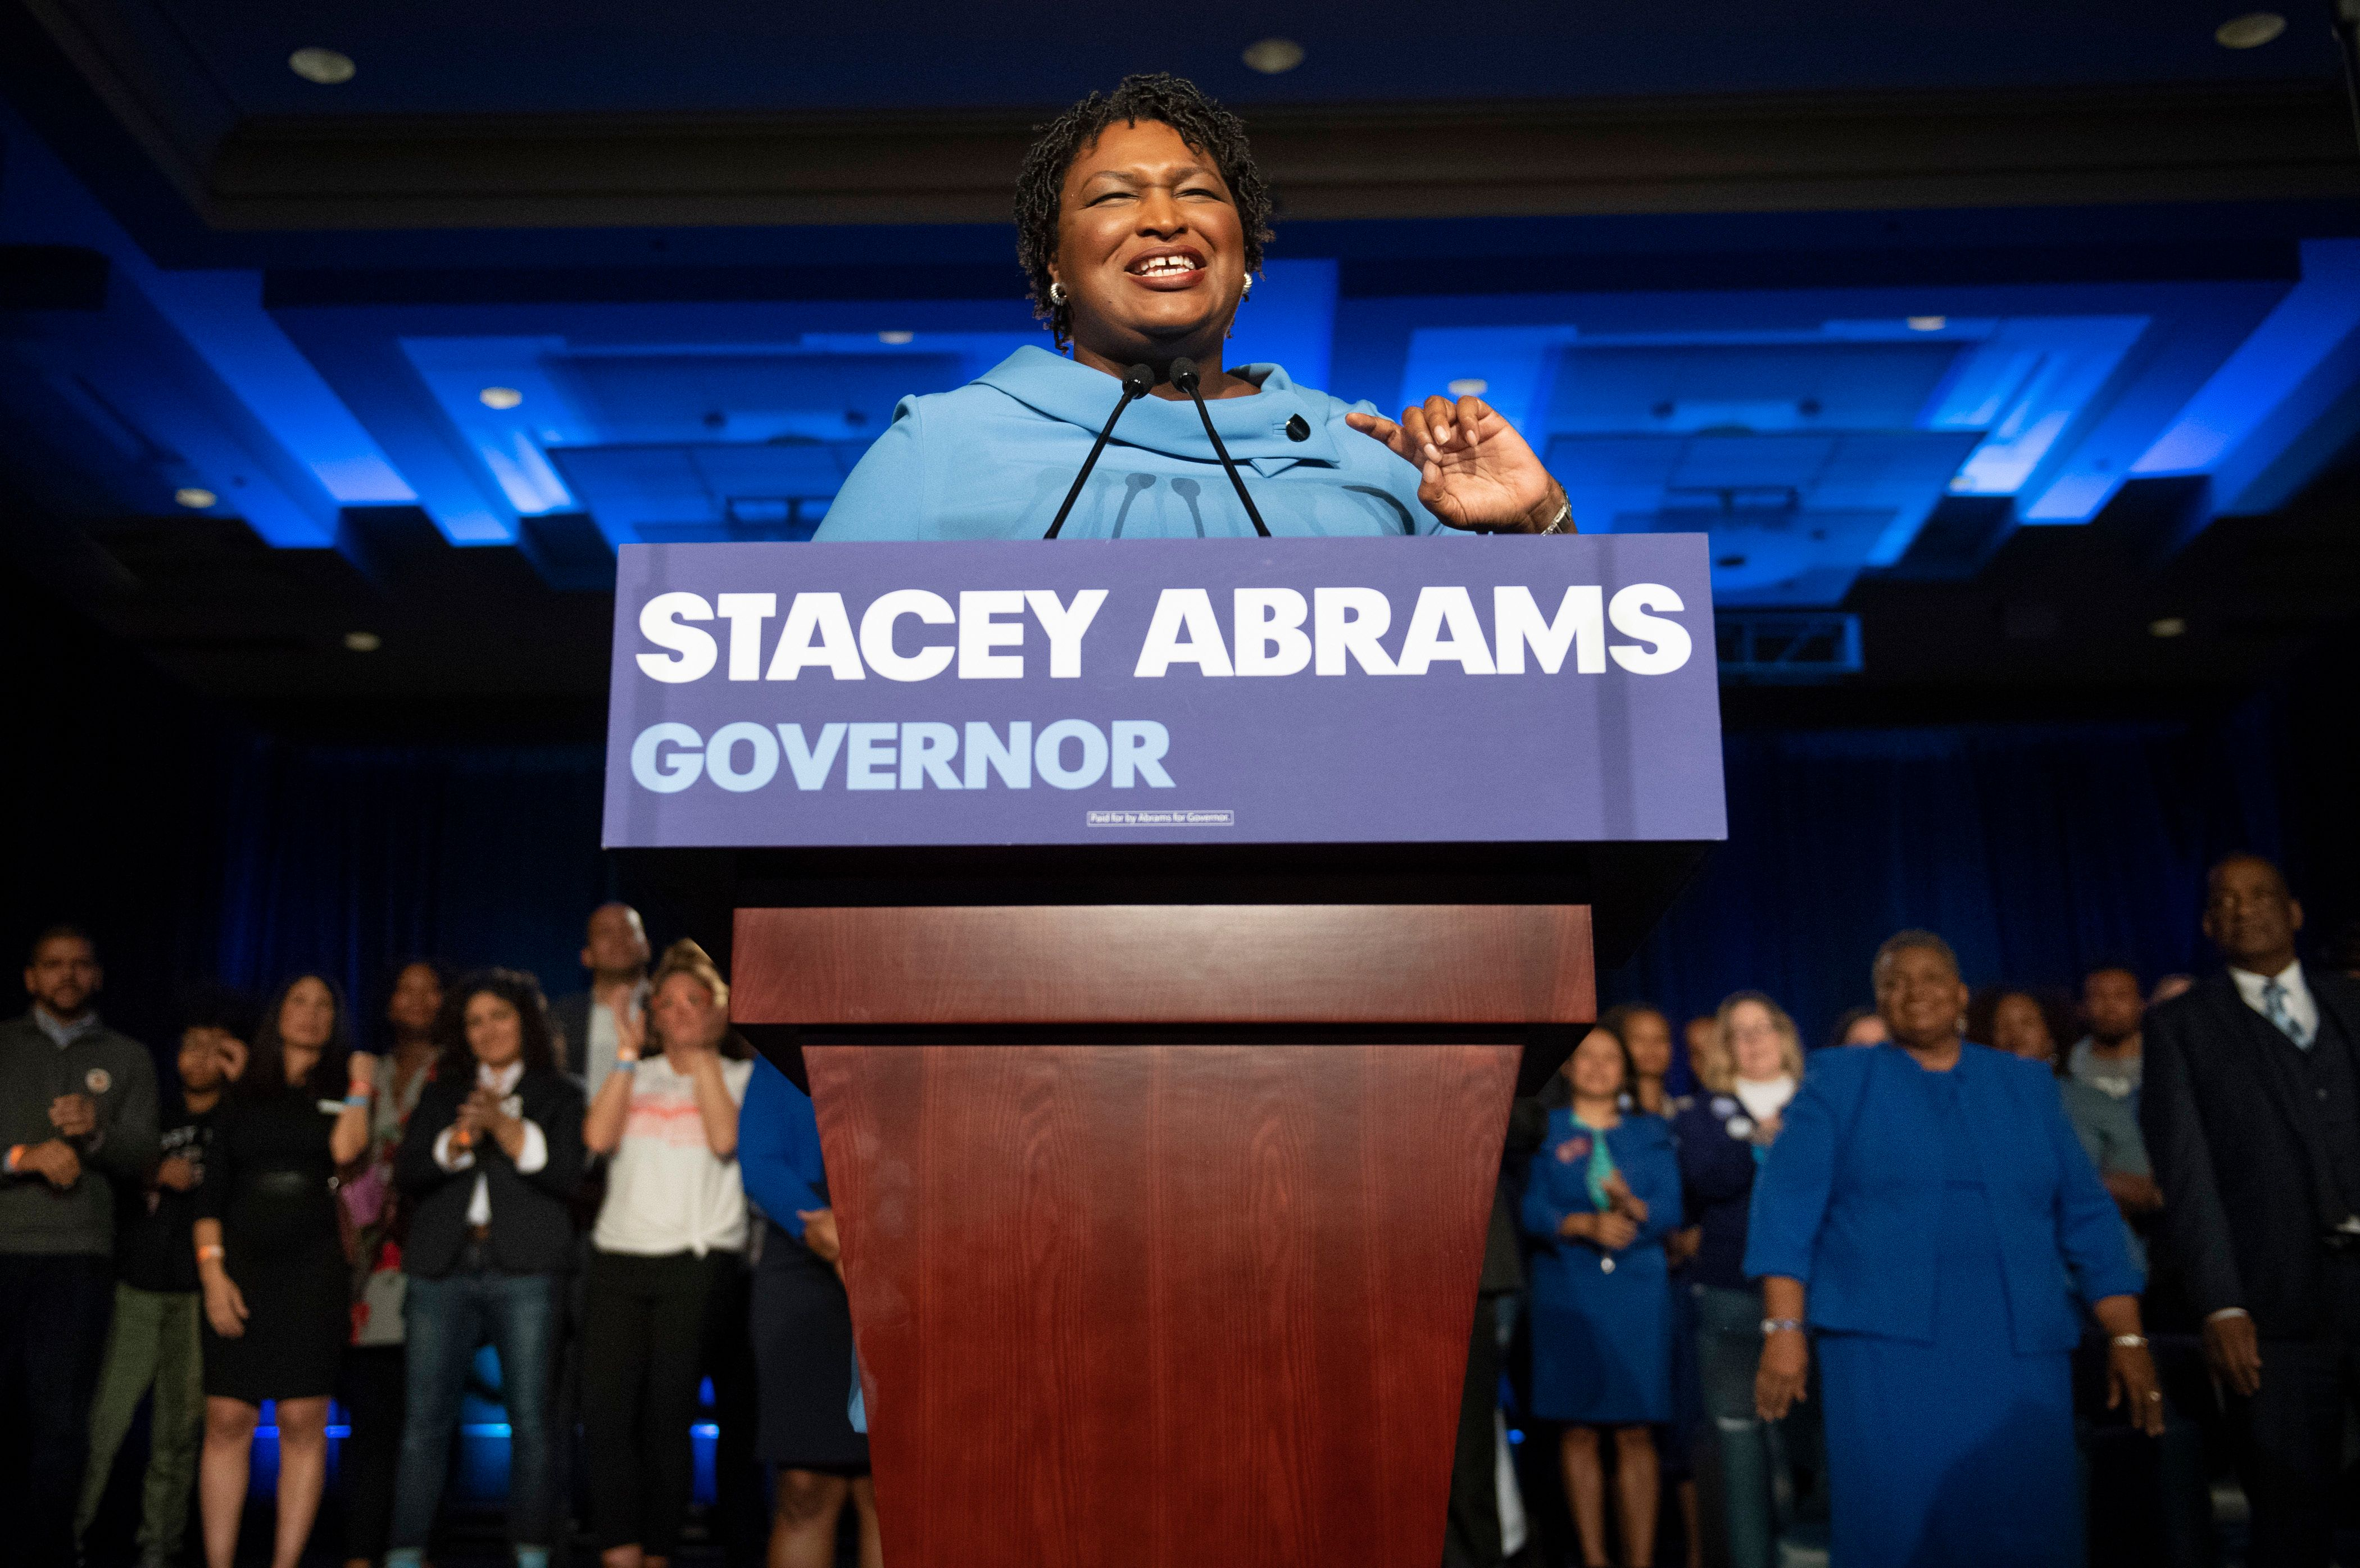 Georgia Democratic gubernatorial candidate Stacey Abrams speaks to supporters about her expectations of a run-off during an election night watch party, Tuesday, Nov. 6, 2018, in Atlanta. Abrams, the first black woman to be a major party nominee for governor in the United States, faced Republican challenger Georgia Secretary of State Brian Kemp. (AP Photo/John Amis)